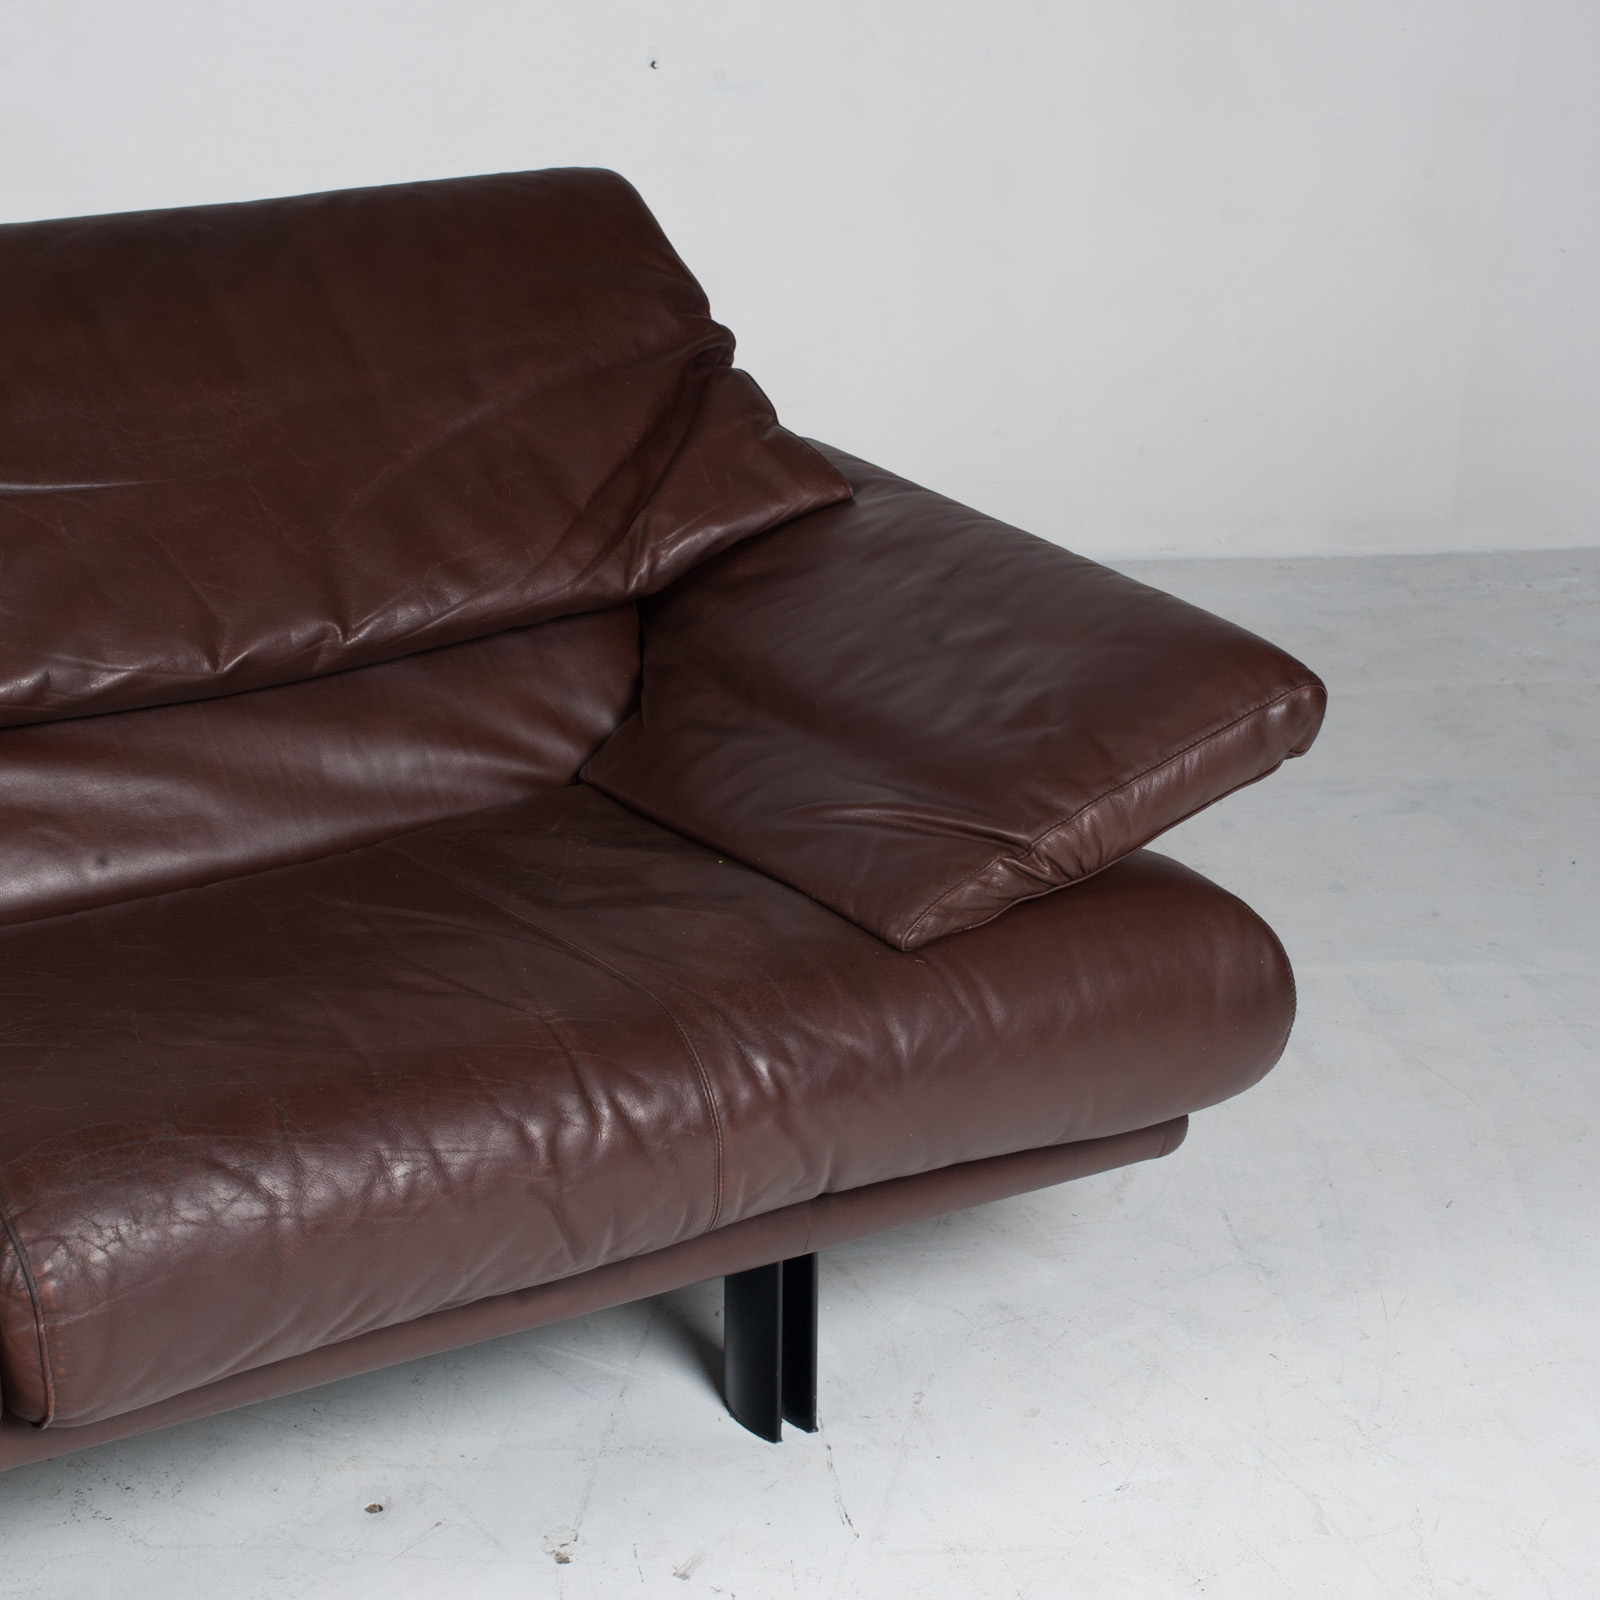 Alanda Sofa By Paolo Piva For B&b Italia In Burgundy Leather 1980s Italy 06